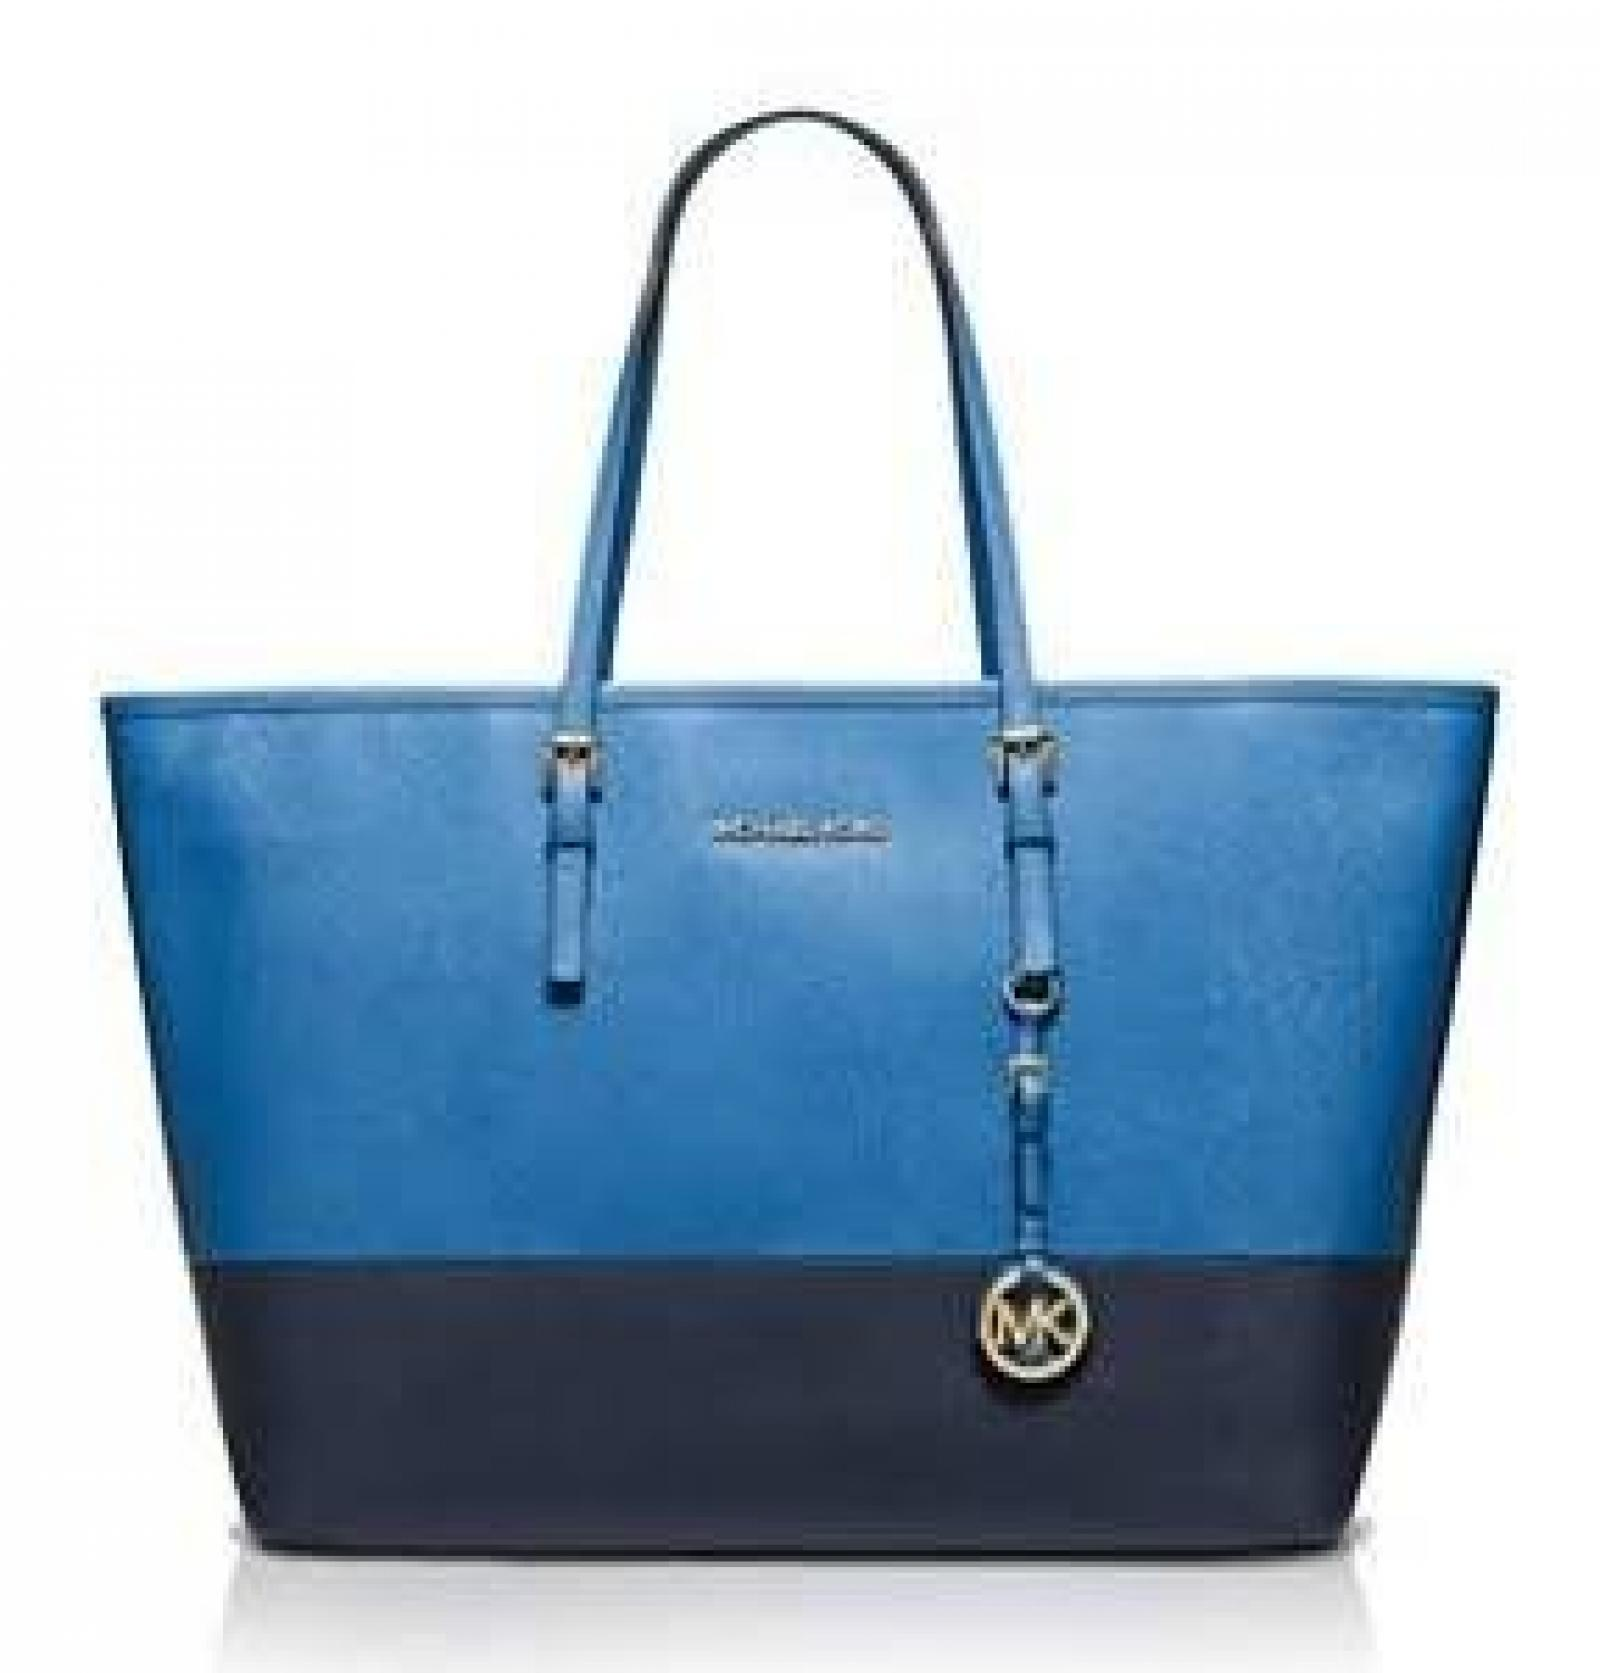 Michael Kors Tote - Jet Set Travel Medium Colorblock Heritge Blue/Navy